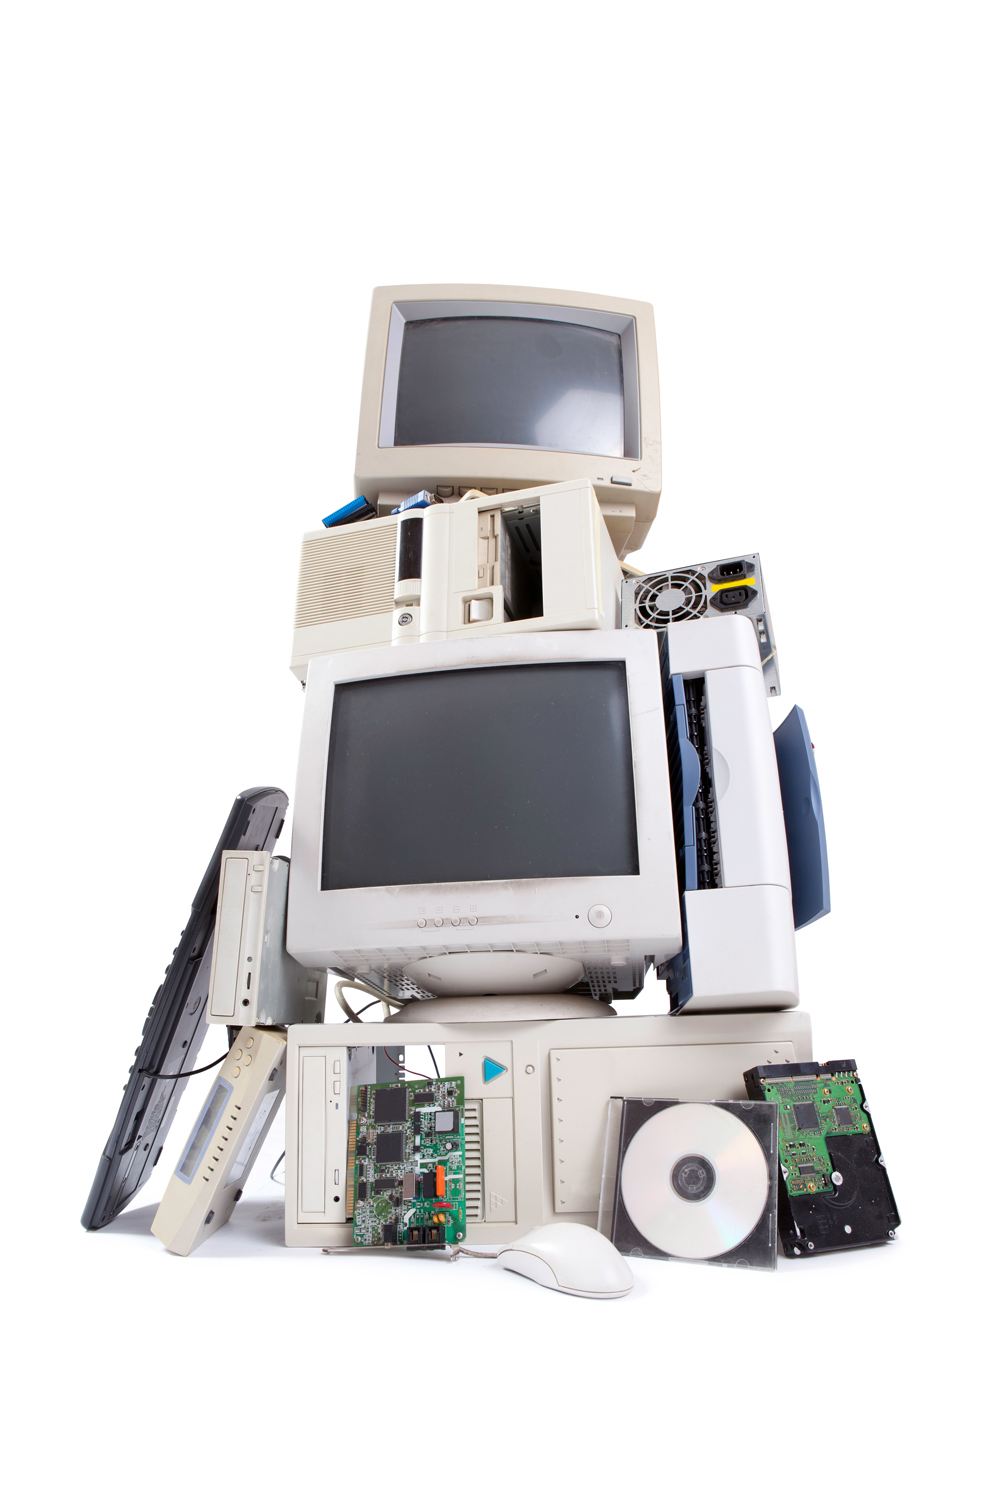 Instead of throwing electronic devices away consider recycling, repairing, refurbishing, or selling them.